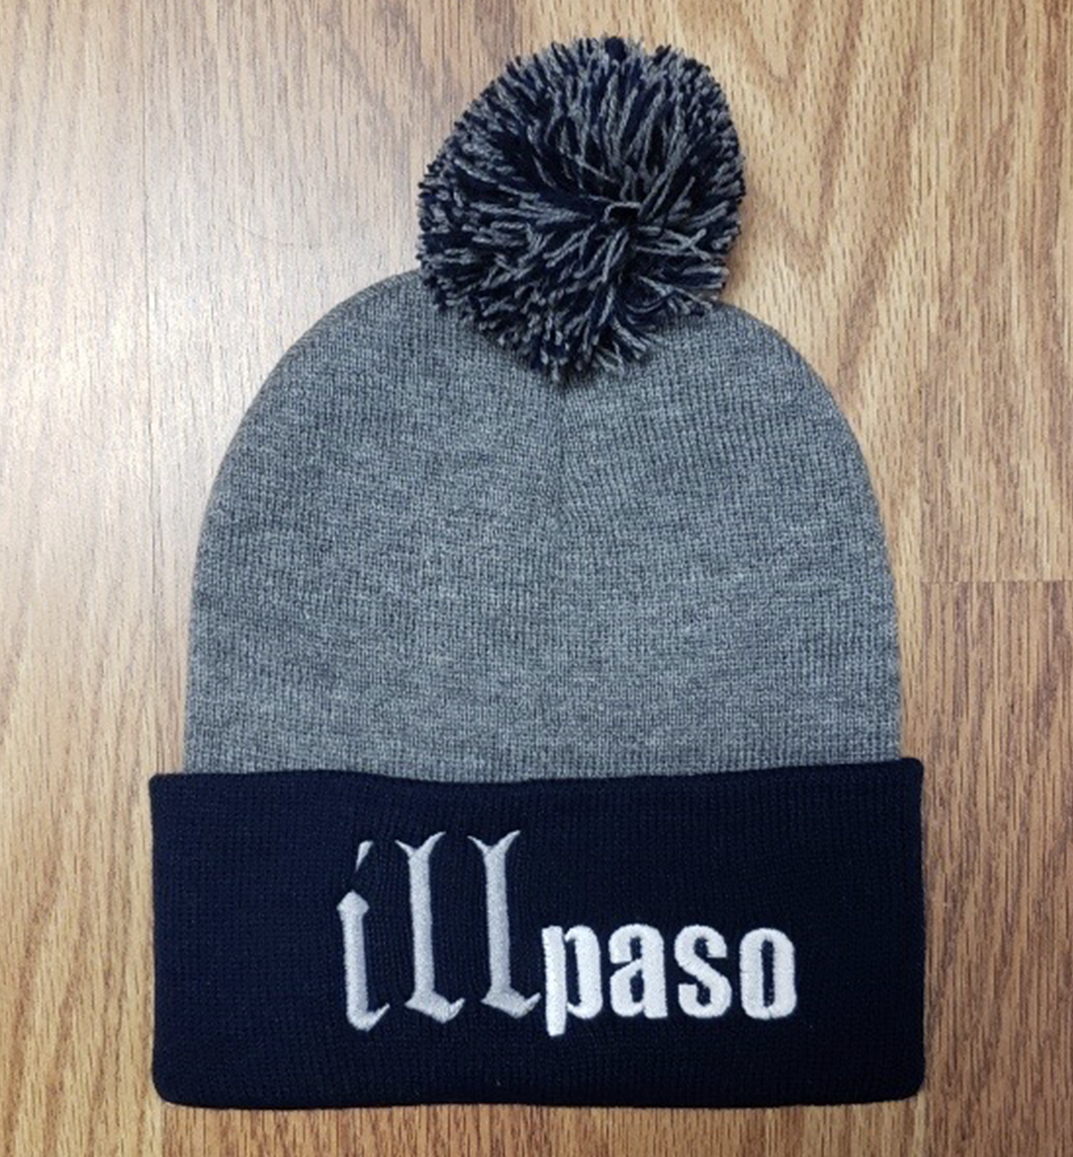 """illmatic Tribute"" Pom Beanie (Navy and Gray) by illpaso"